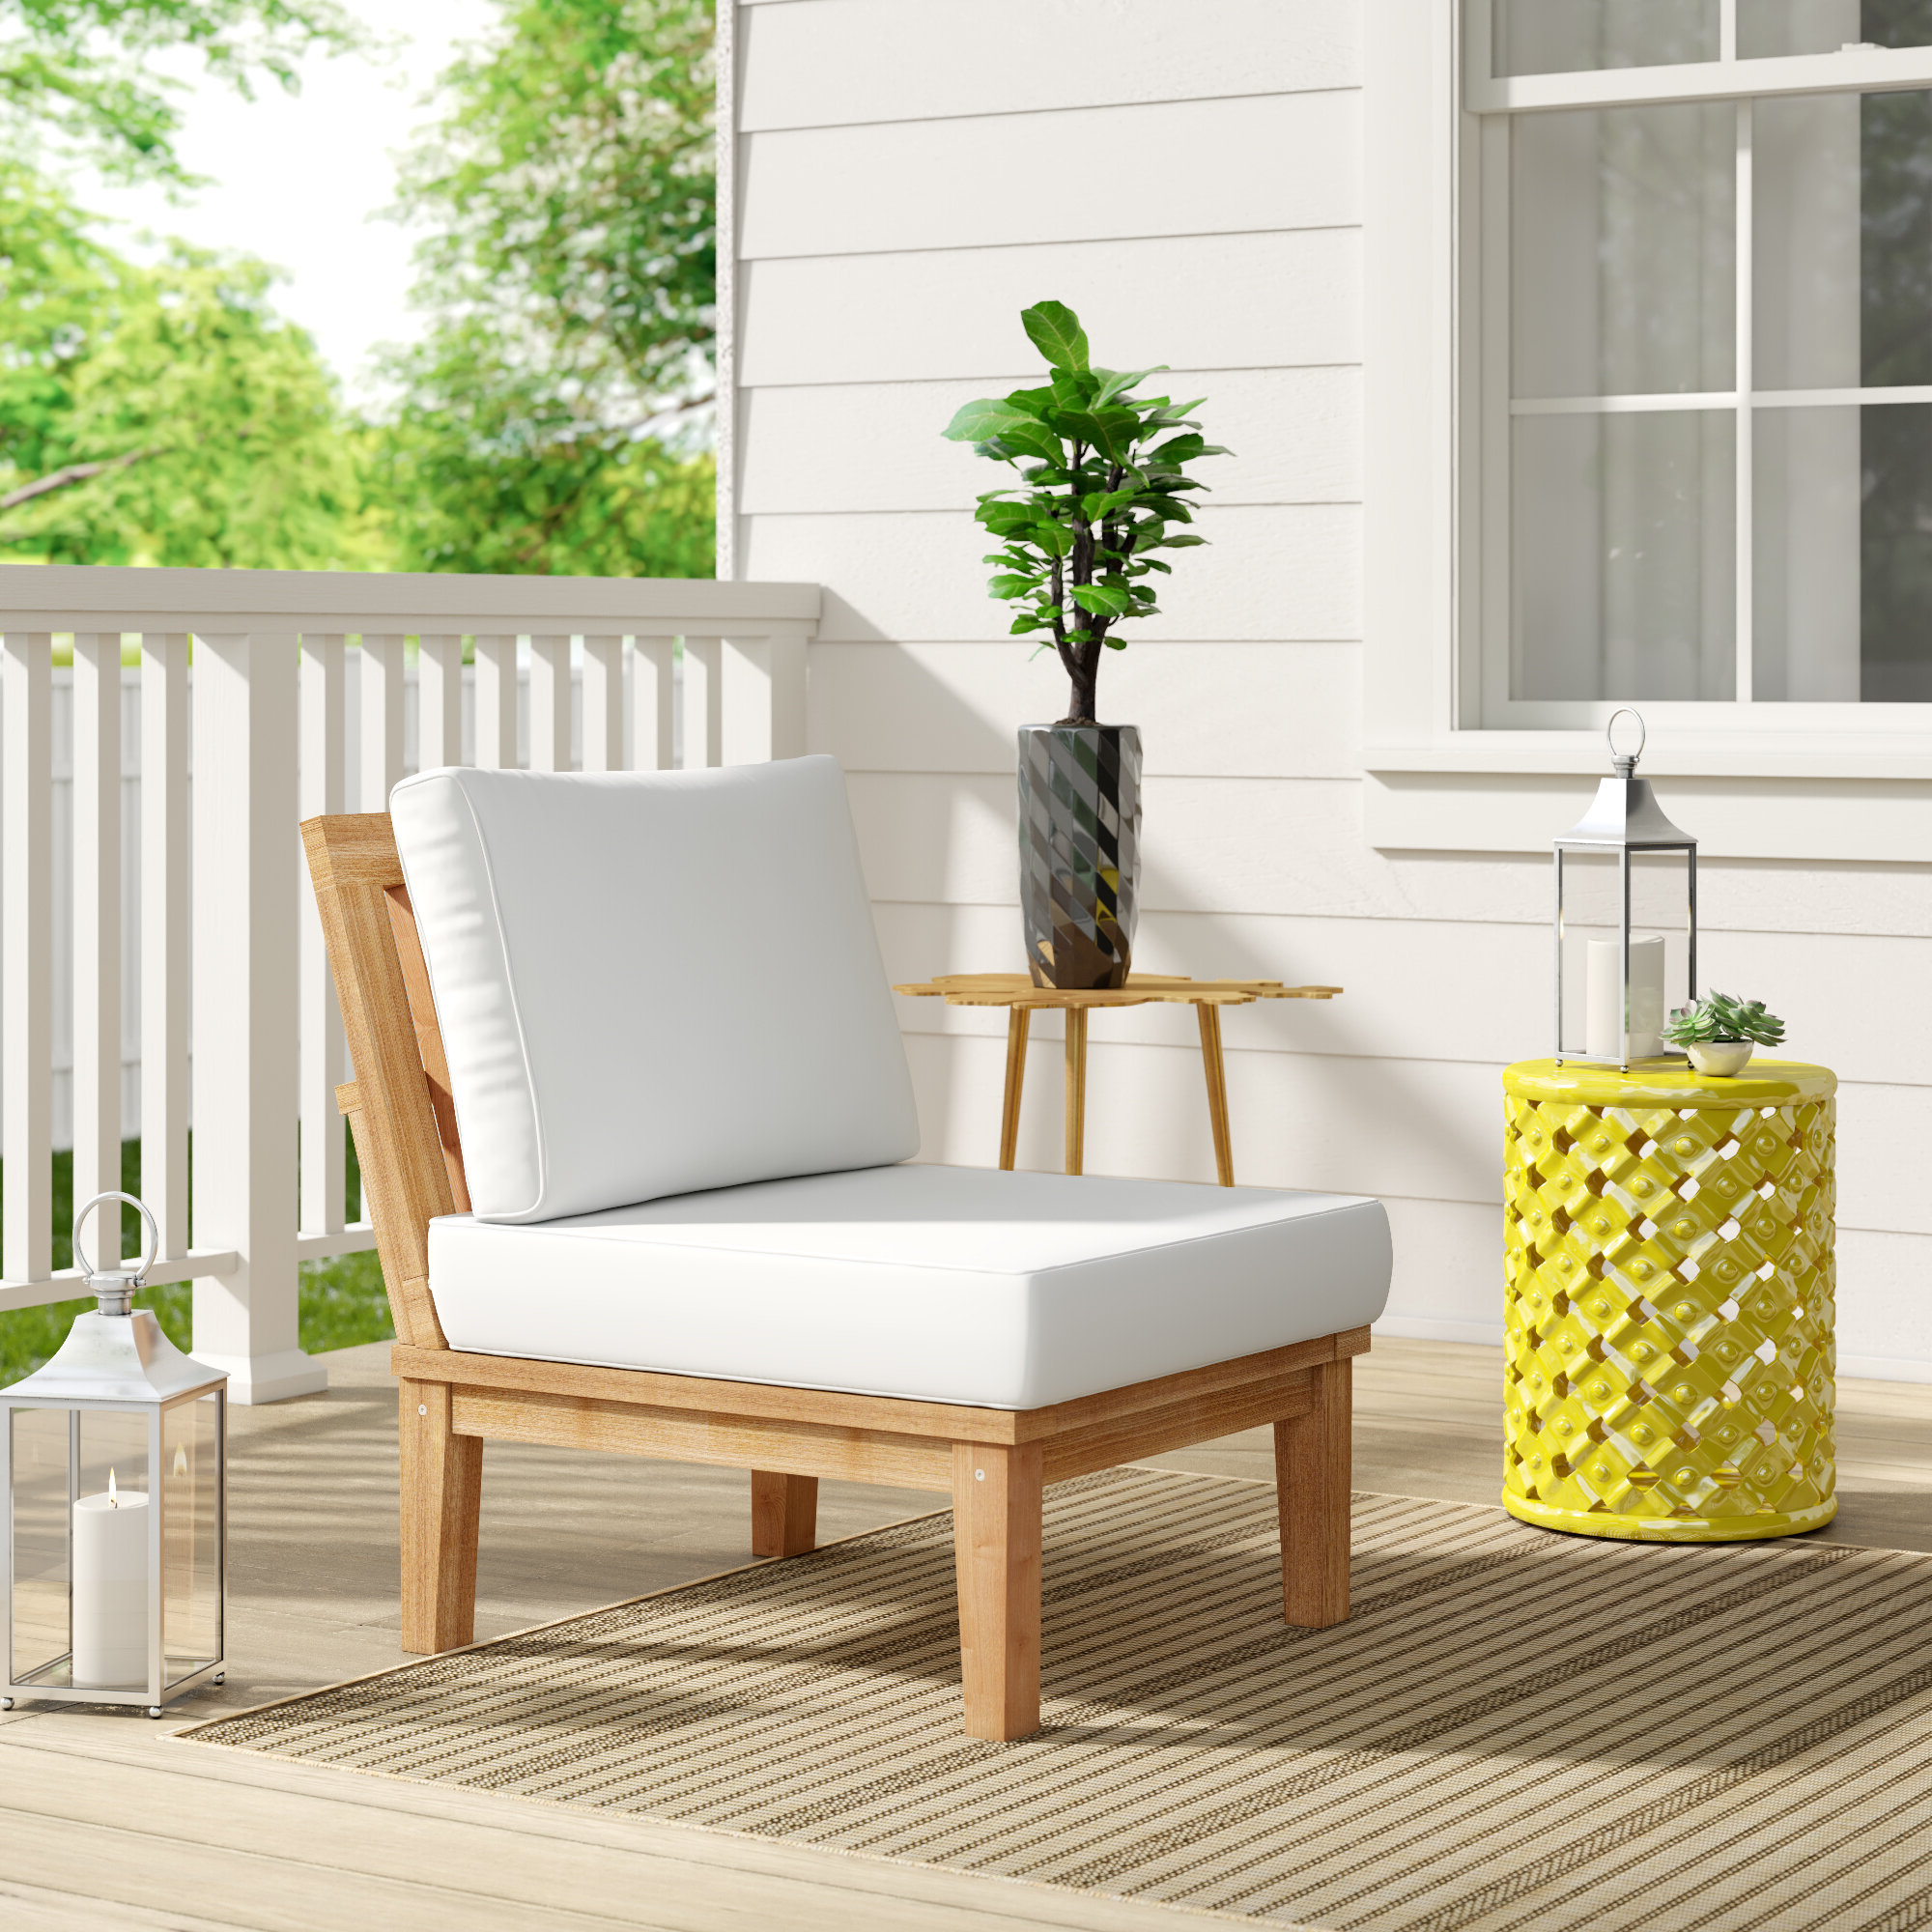 Elaina Teak Loveseats With Cushions With Regard To Best And Newest Elaina Teak Patio Chair With Cushions (View 8 of 20)